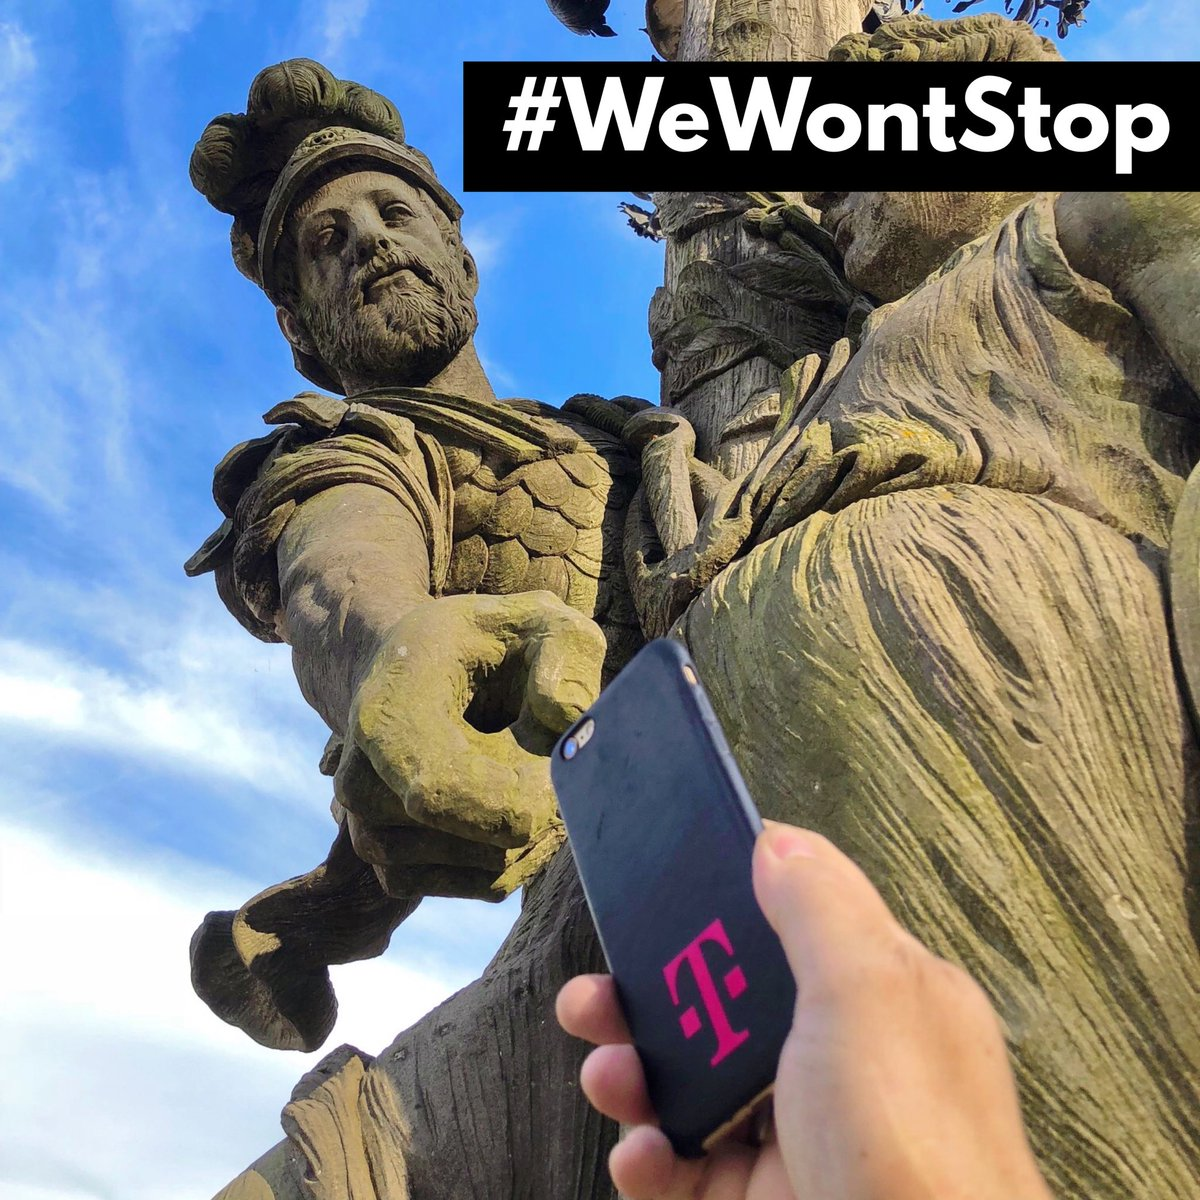 ARE YOU WITH US?   >> We won't stop until everyone is connected  <<  #WeWontStop #uncarrier #LoveMagenta #beBold #beOriginal #Magentapic.twitter.com/dVOKMlyRE9